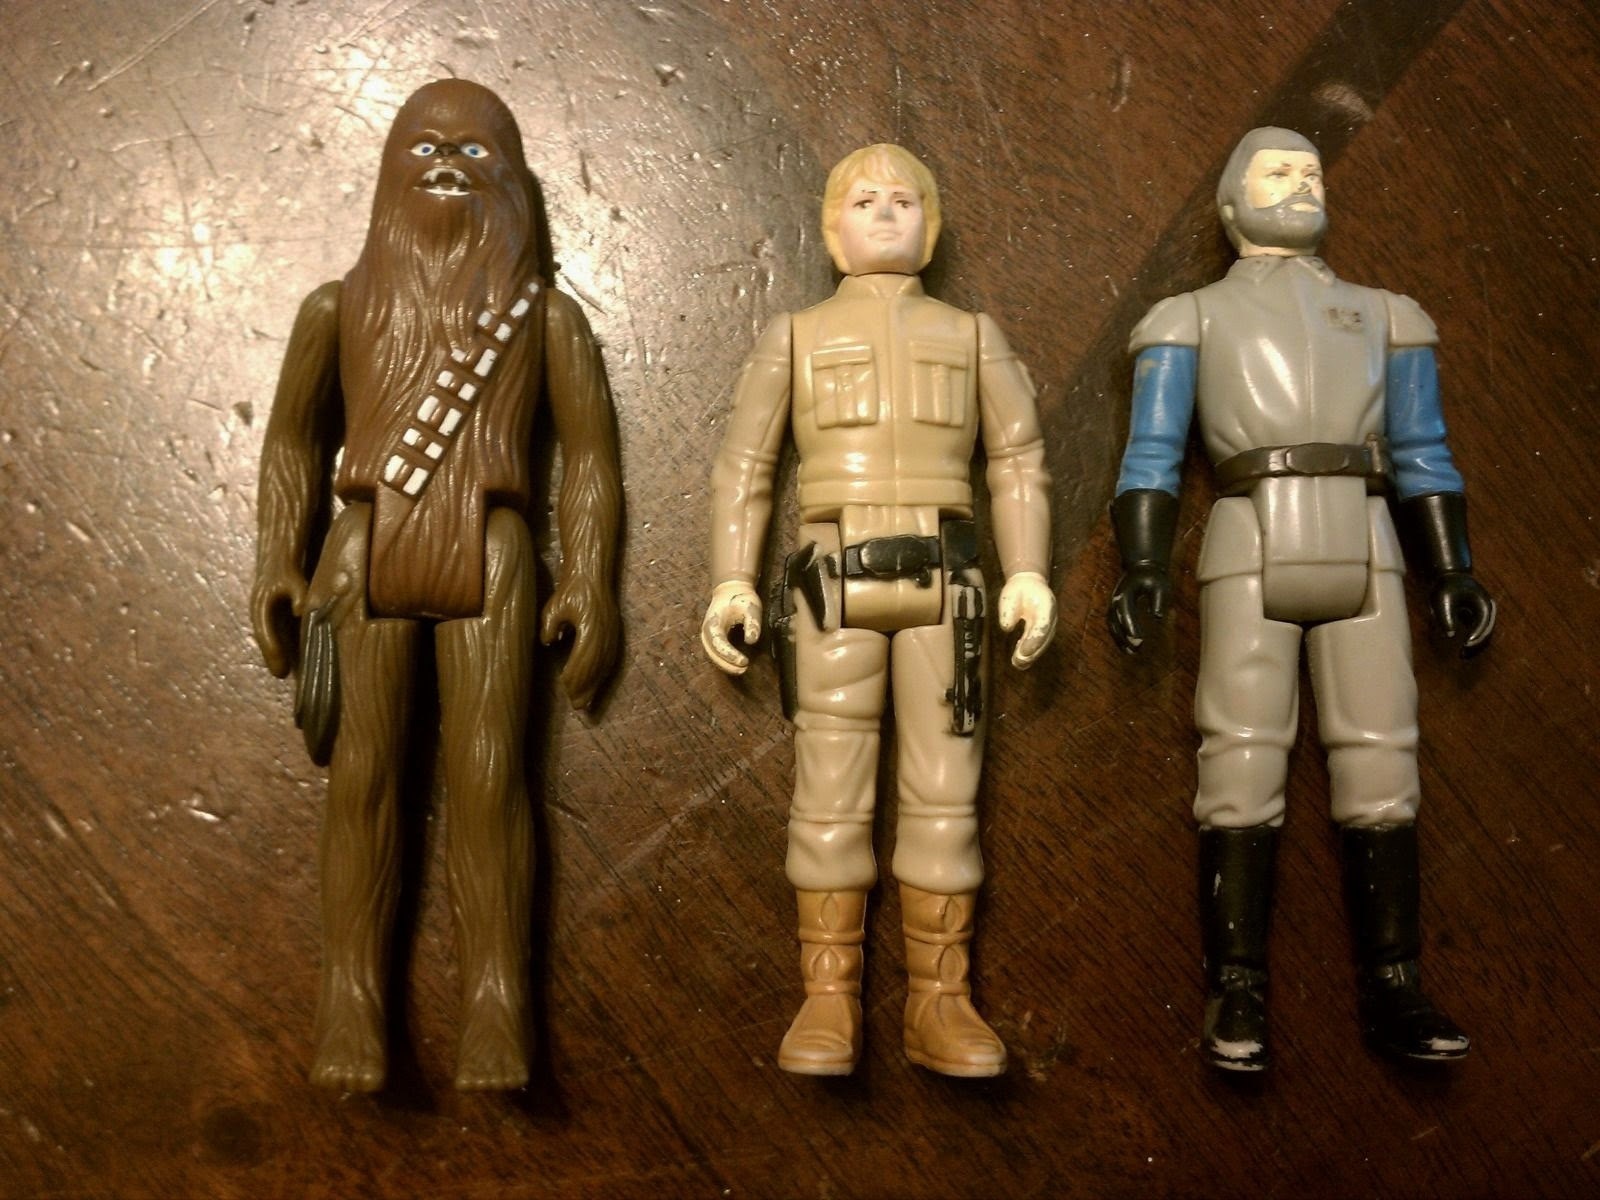 Star Wars Vintage Toys : Monster cafe saltillo even more vintage star wars figures